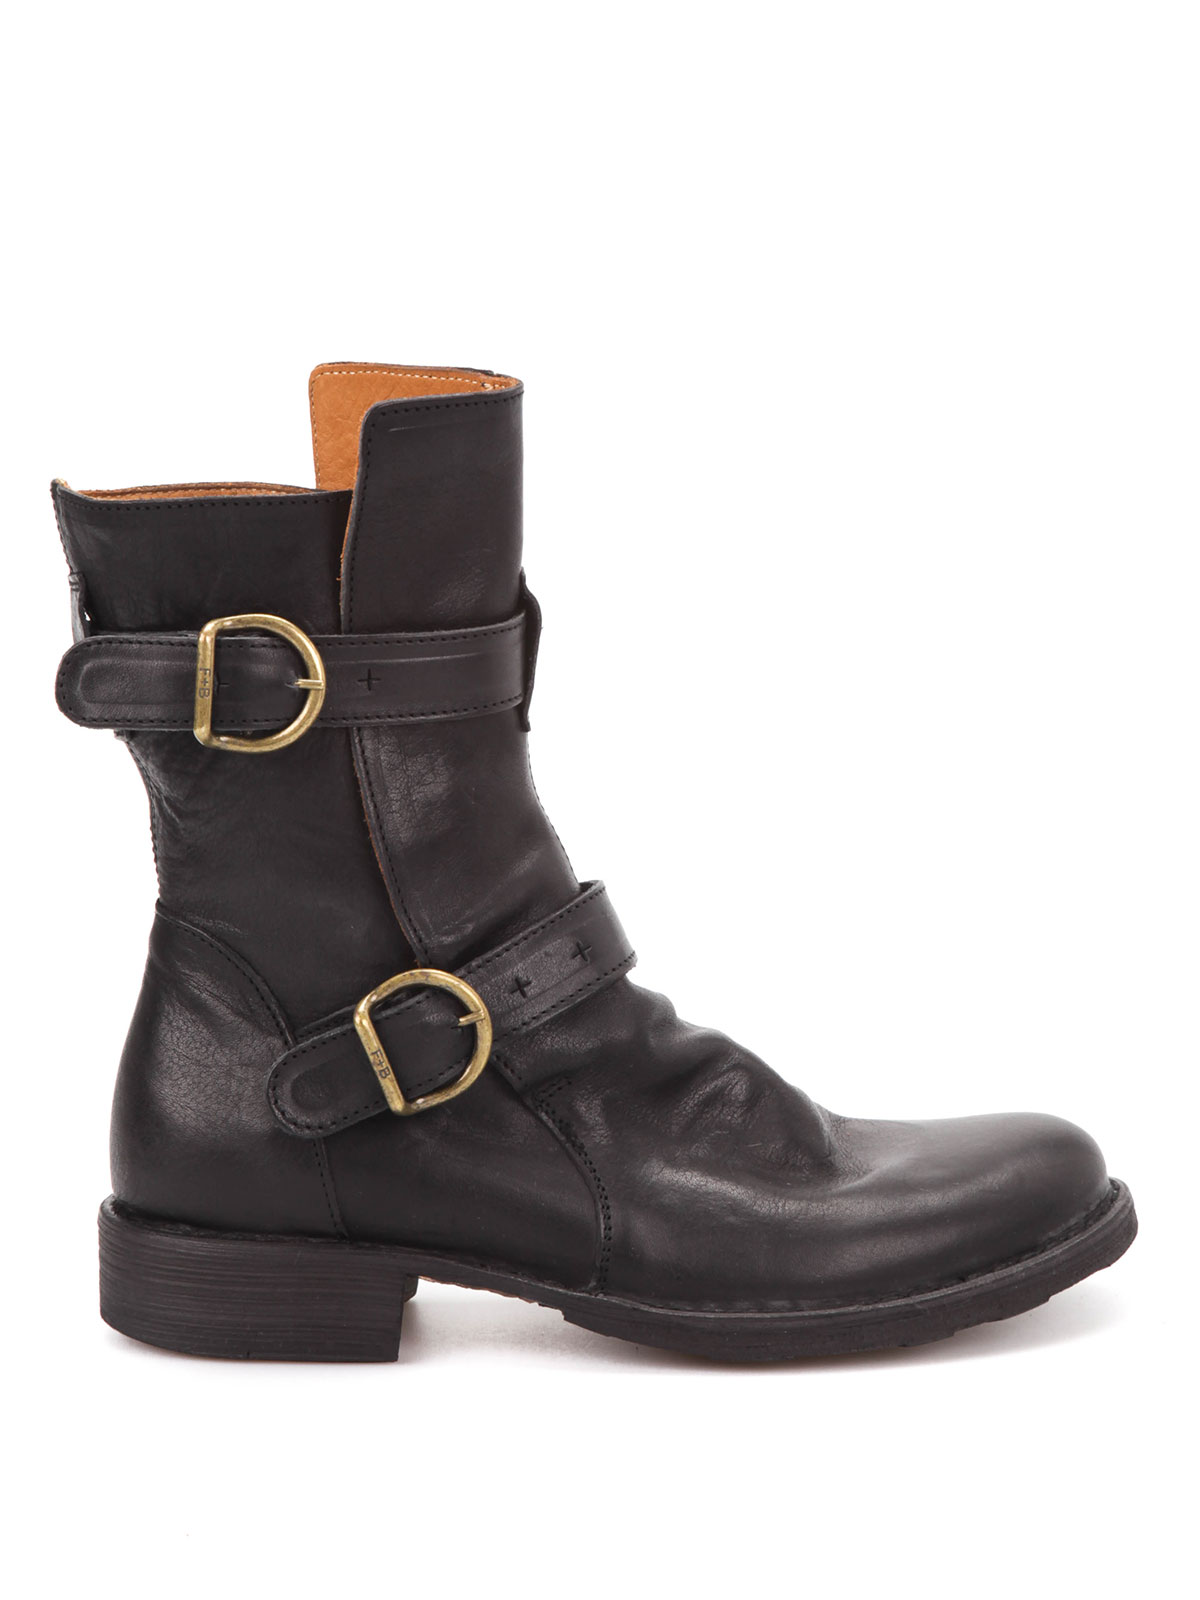 cusna boots by fiorentini baker boots ikrix. Black Bedroom Furniture Sets. Home Design Ideas